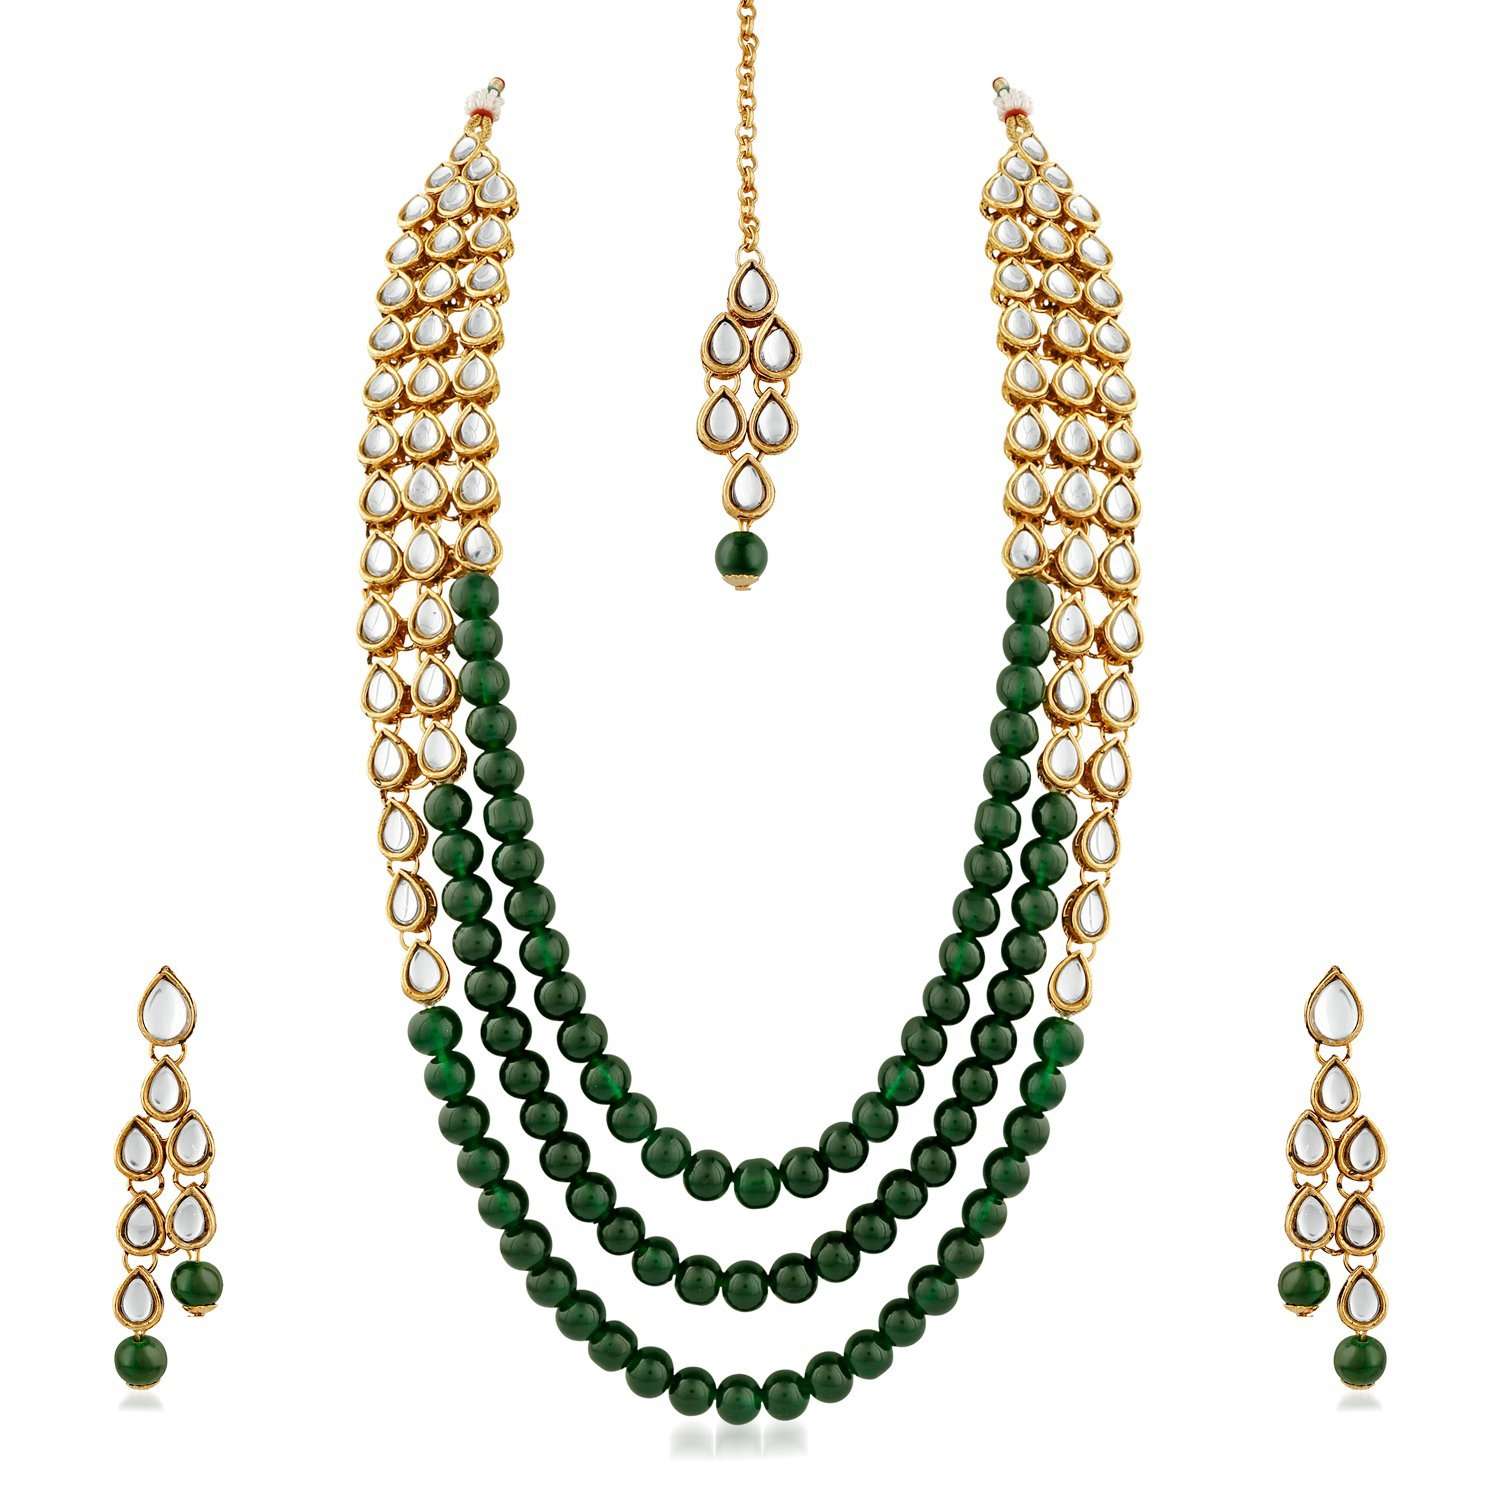 Kundan Jewellery Sets At Affordable Price   Be Beautiful And Healthy!